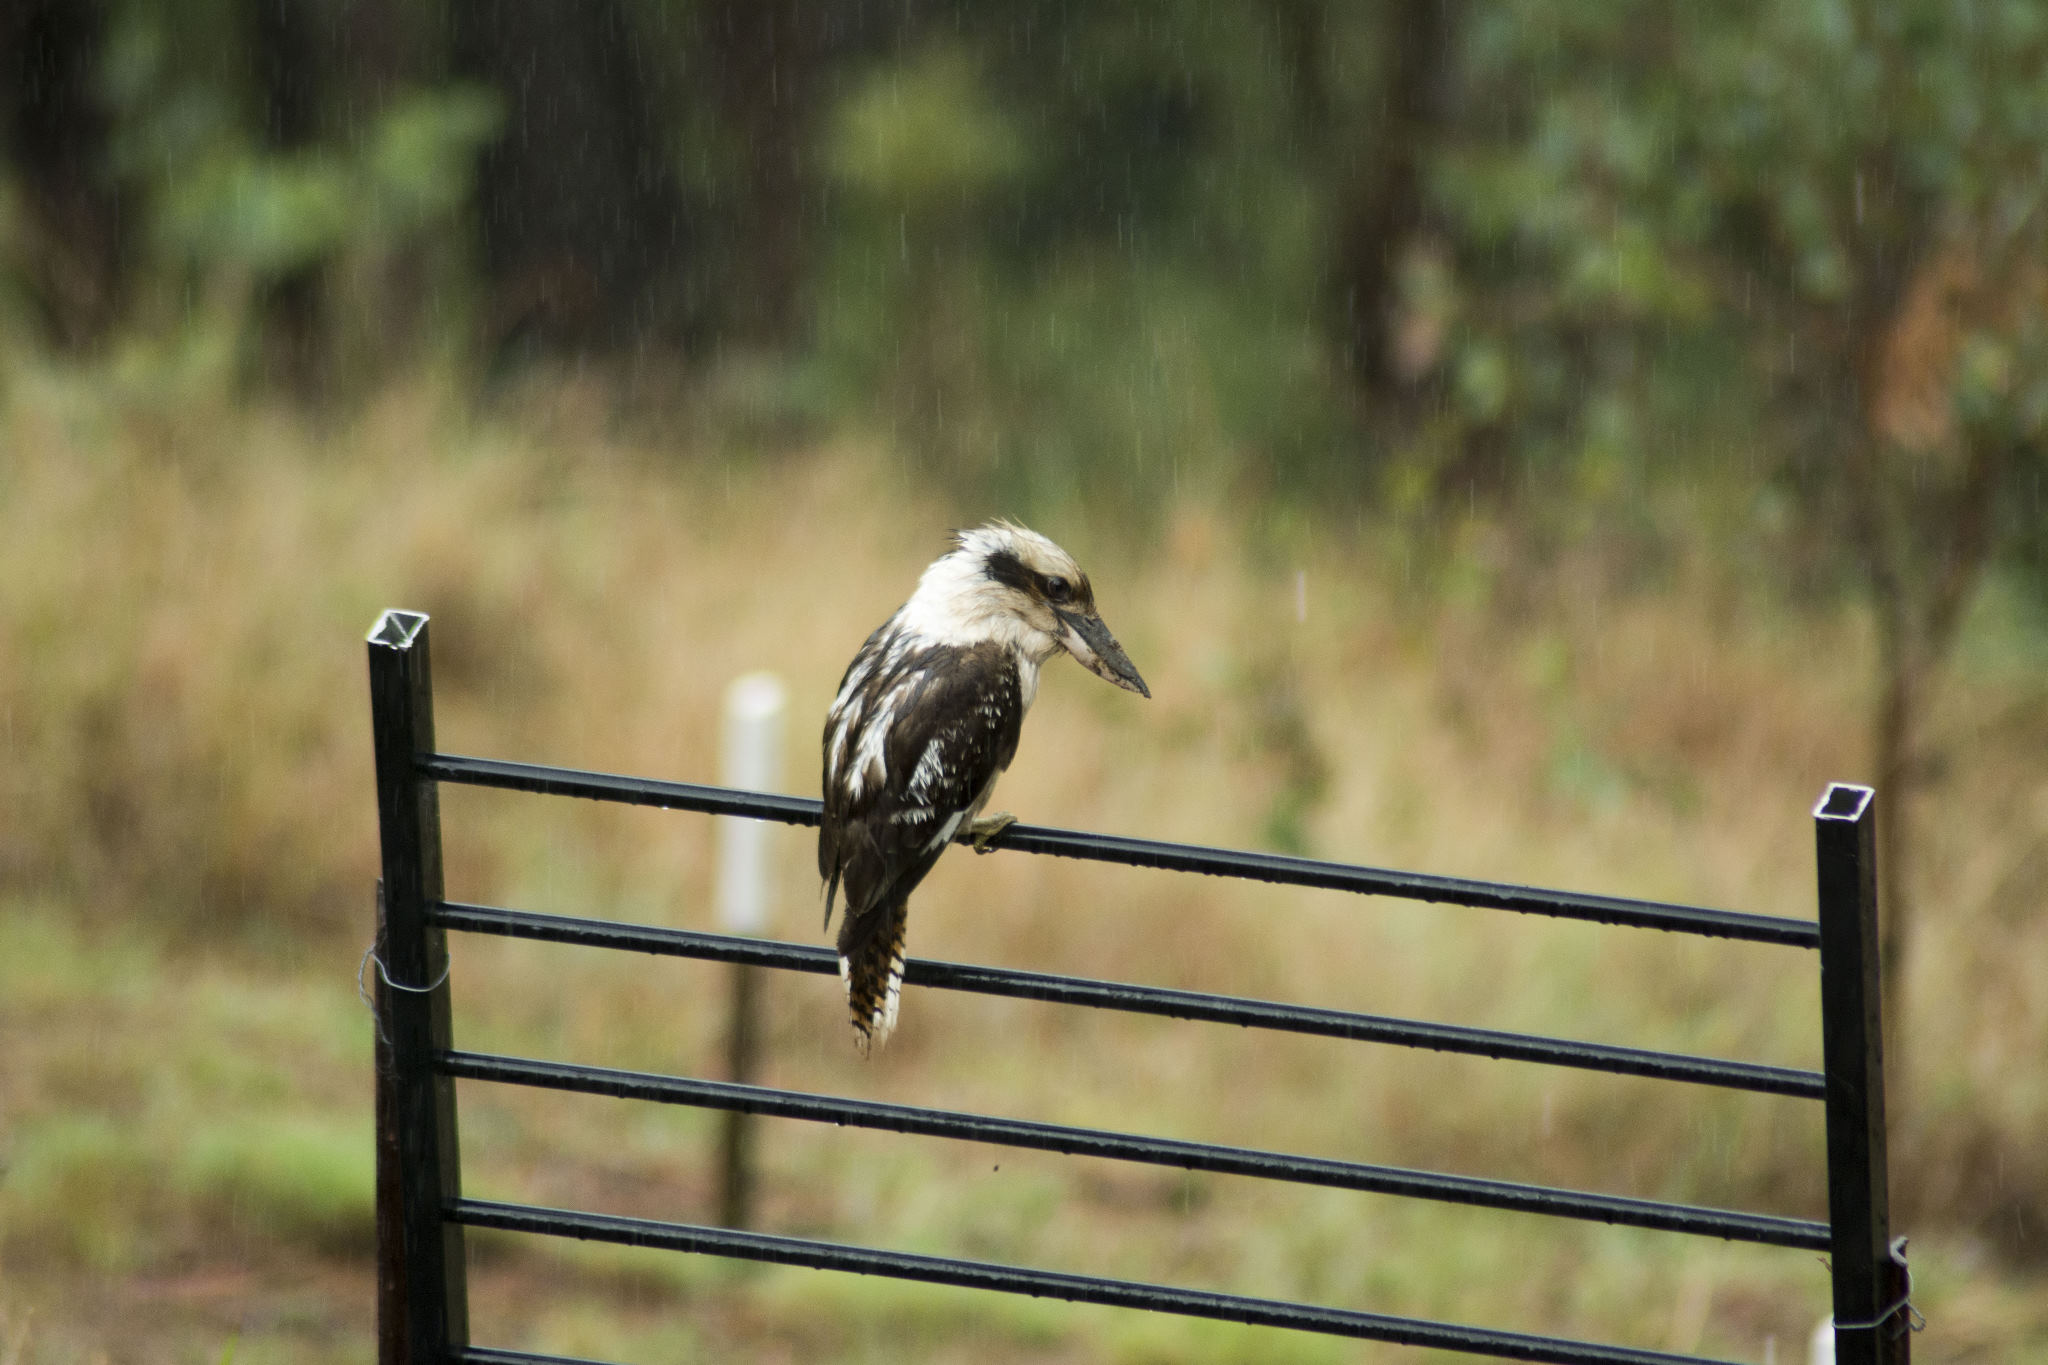 Laughing Kookaburra in the rain